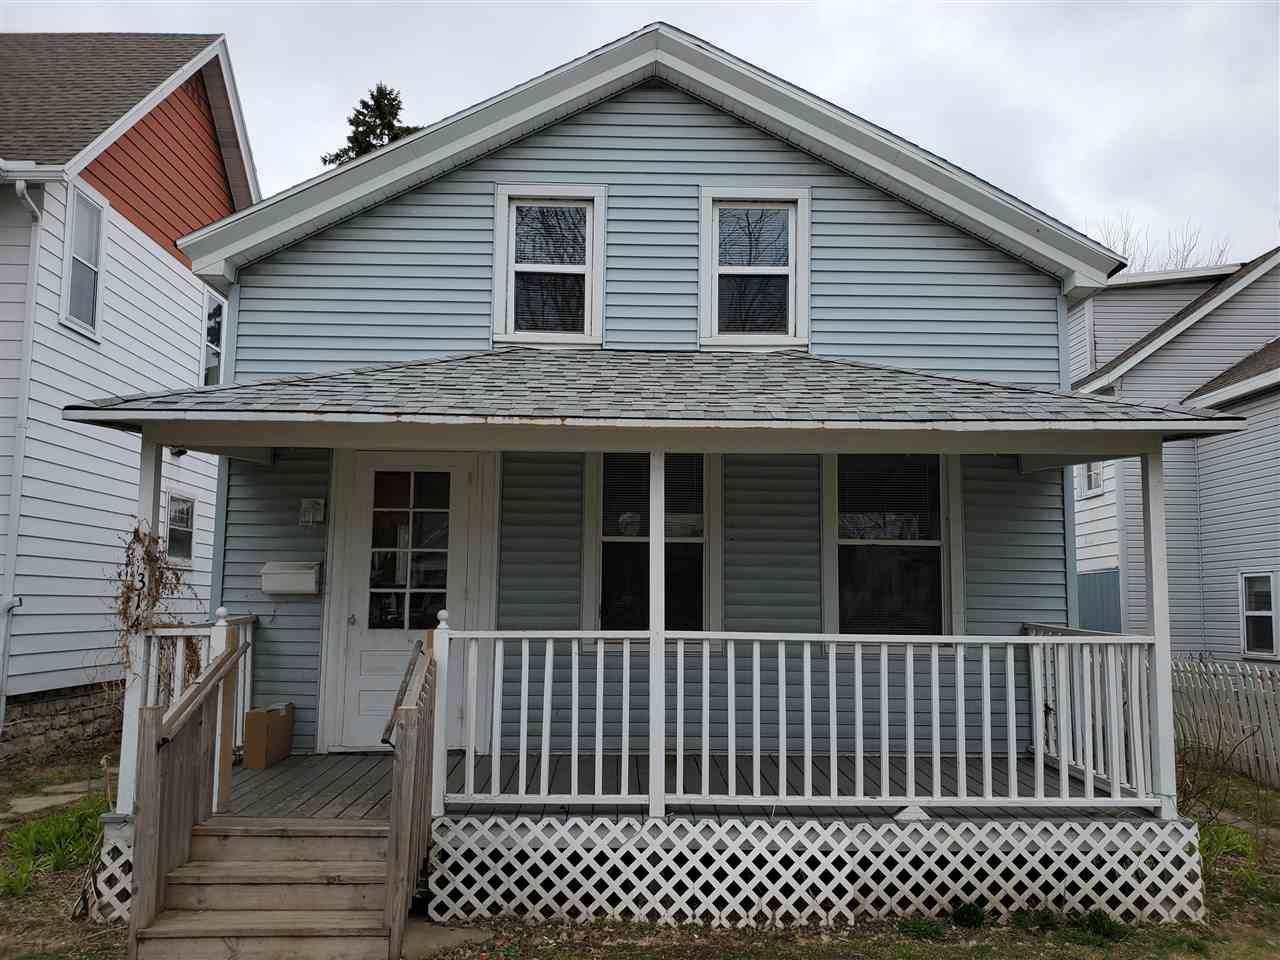 314 S QUINCY Street, Green Bay, WI 54301 - MLS#: 50239666